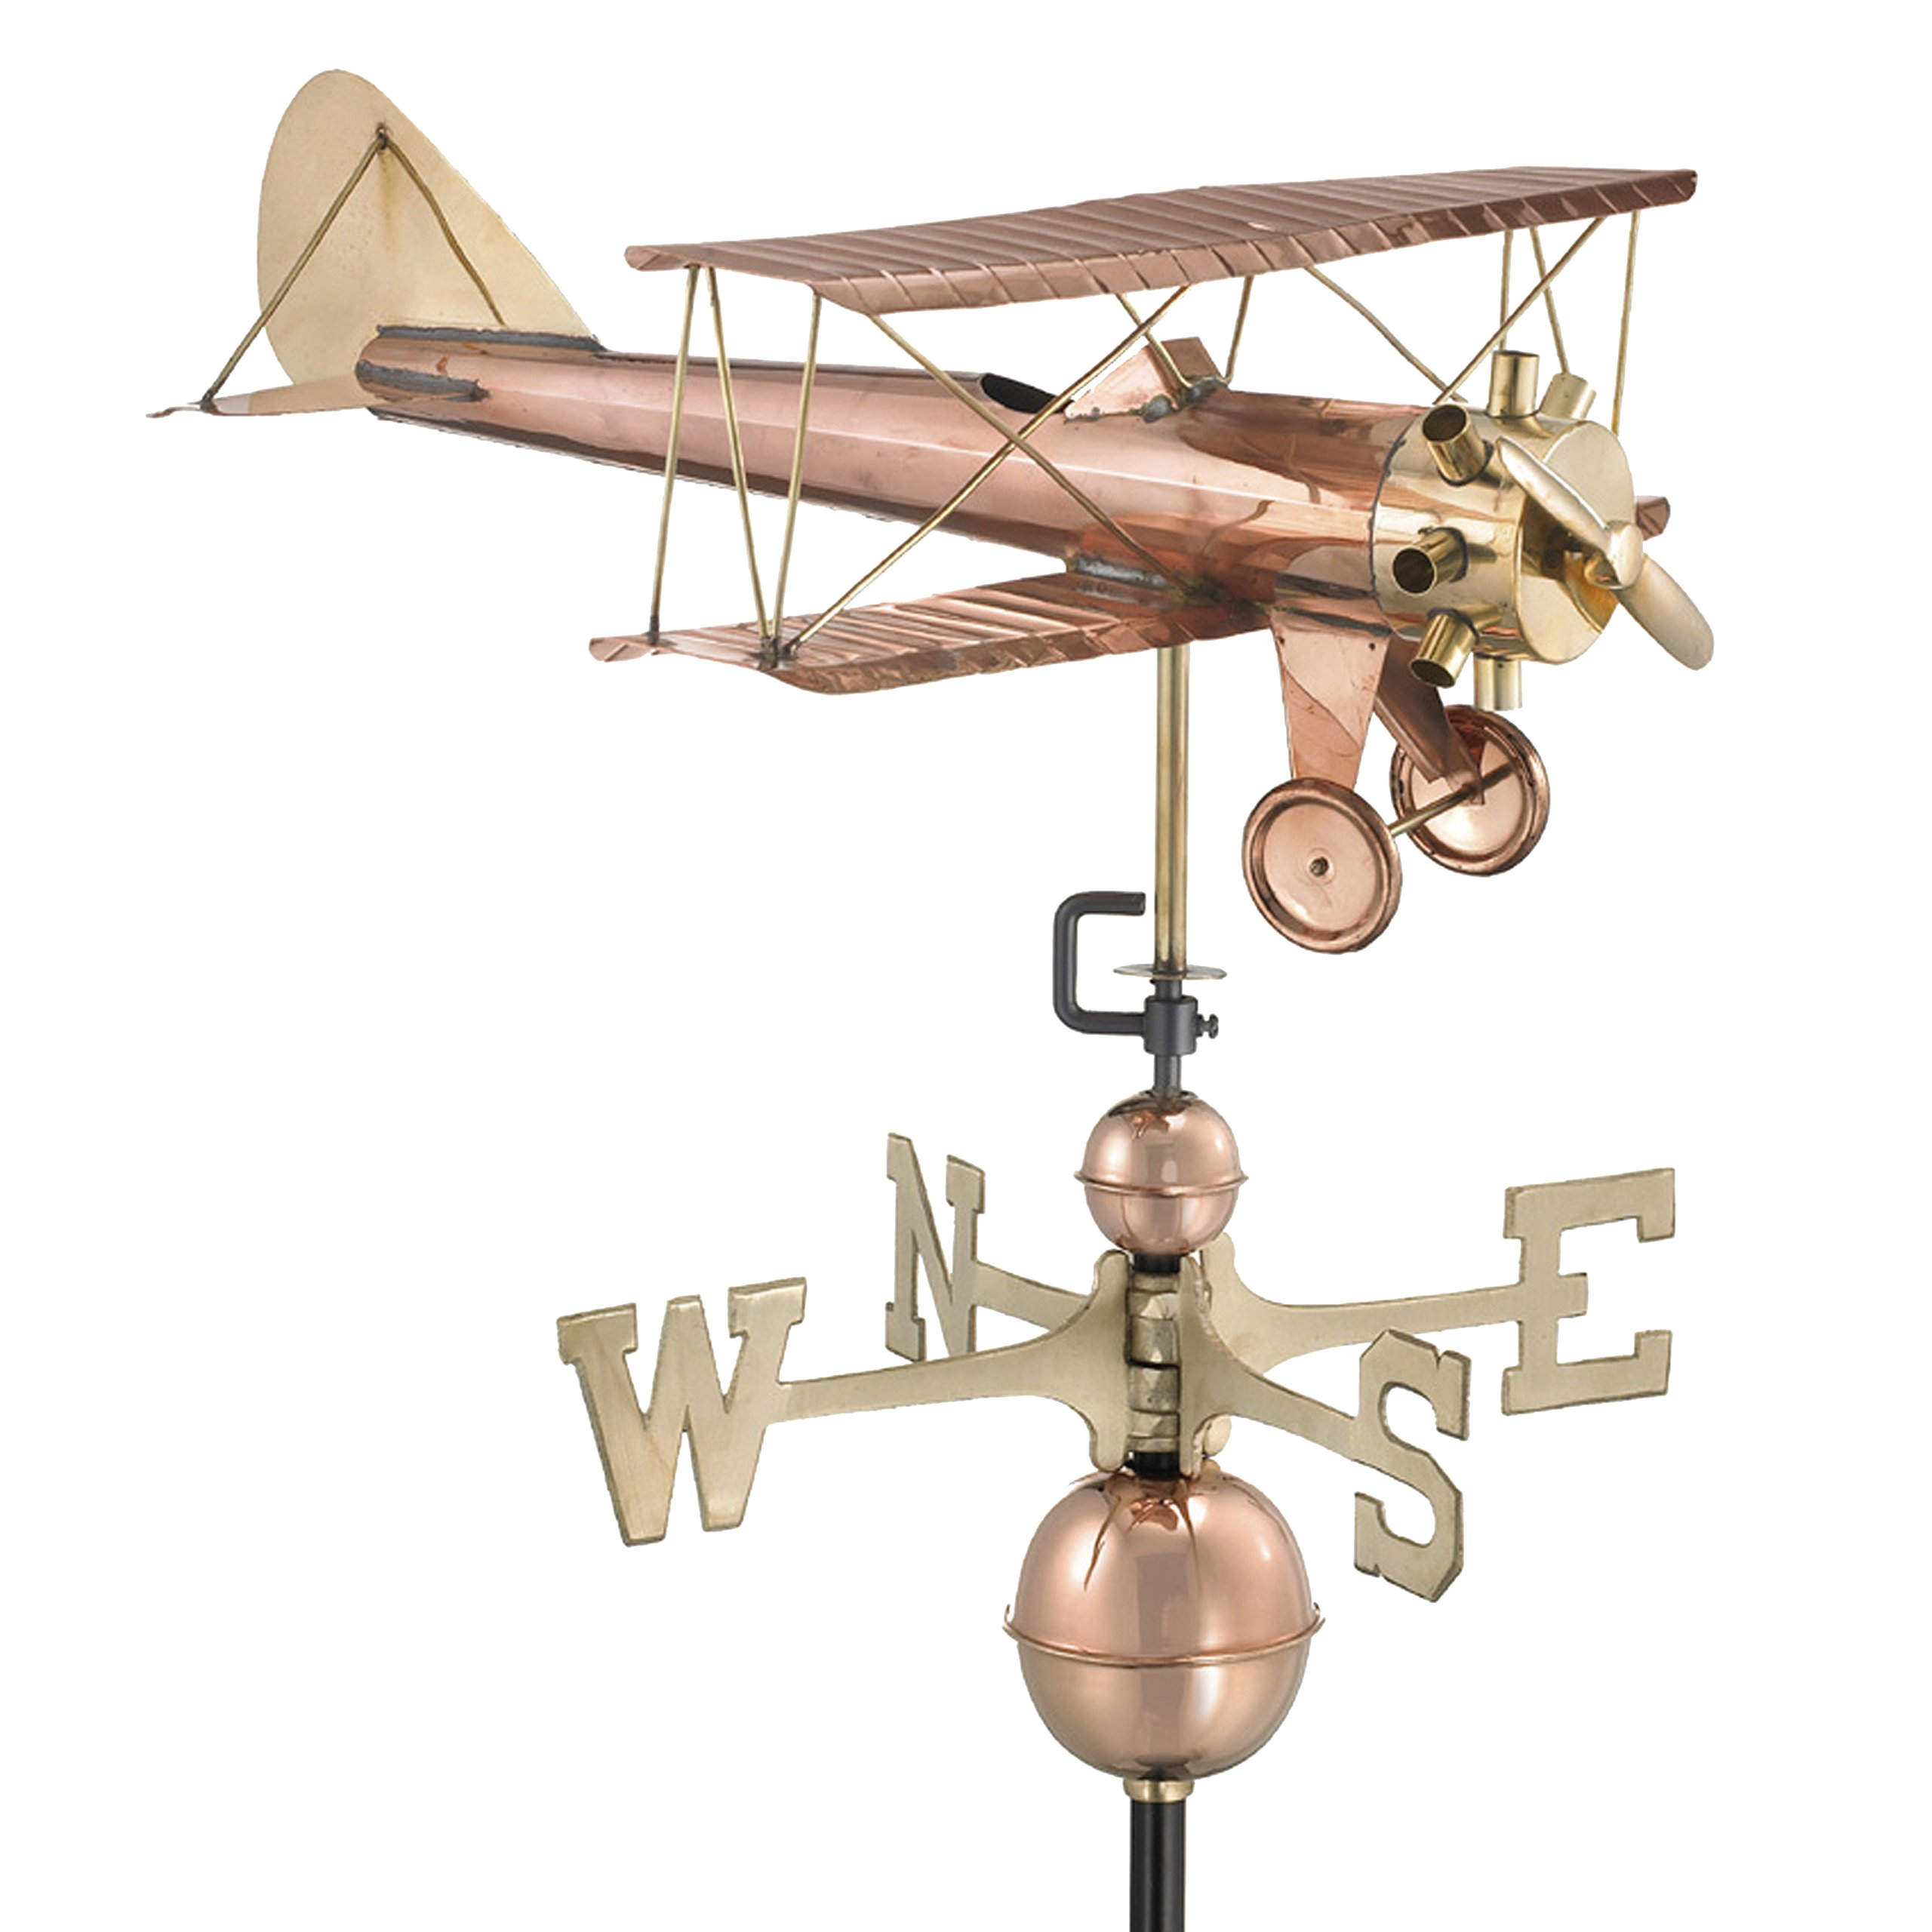 Good Directions Biplane Weathervane, Pure Copper, Airplane Weathervanes, Aviation Décor by Good Directions